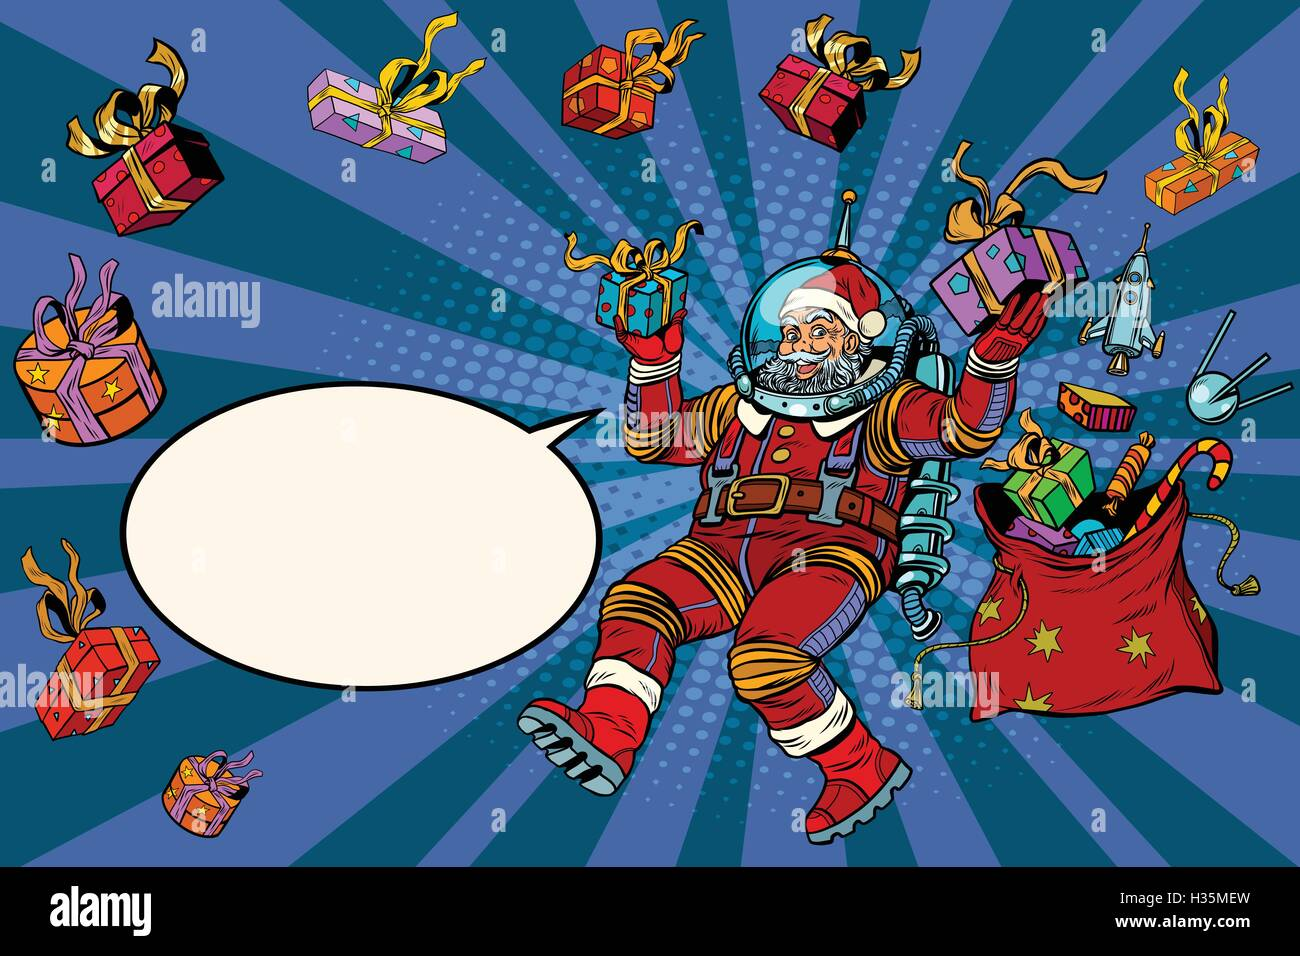 Space Santa Claus in zero gravity with Christmas gifts - Stock Image